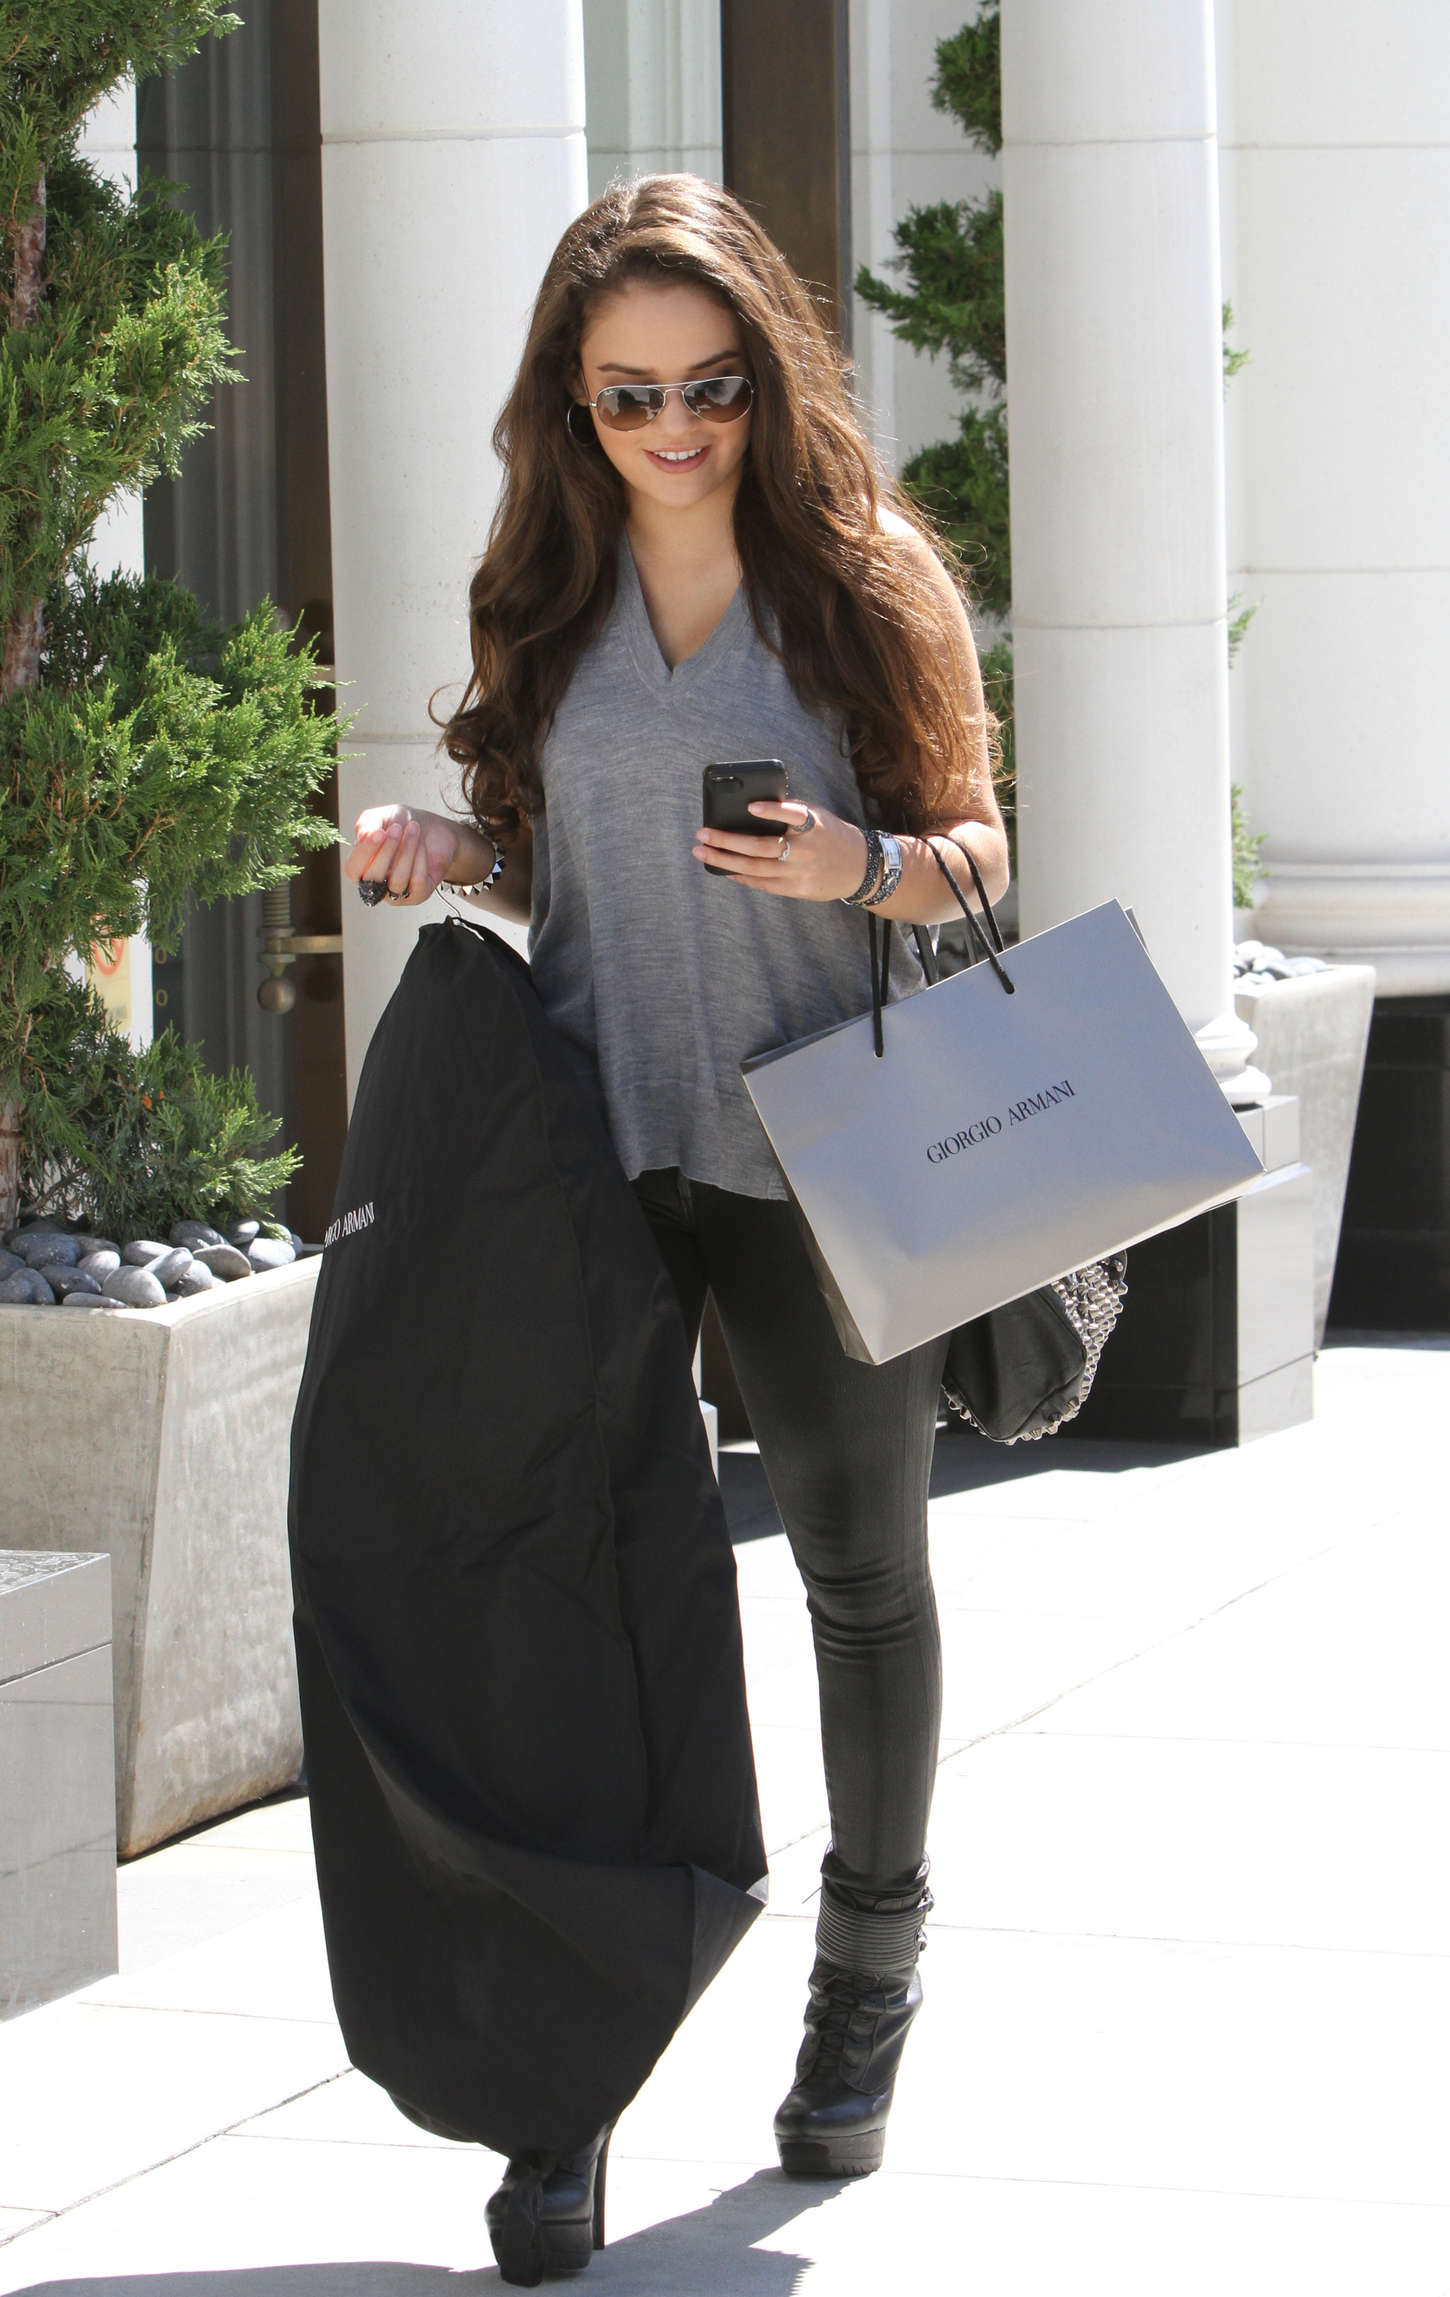 Madison Pettis Rodeo Drive in Beverly Hills